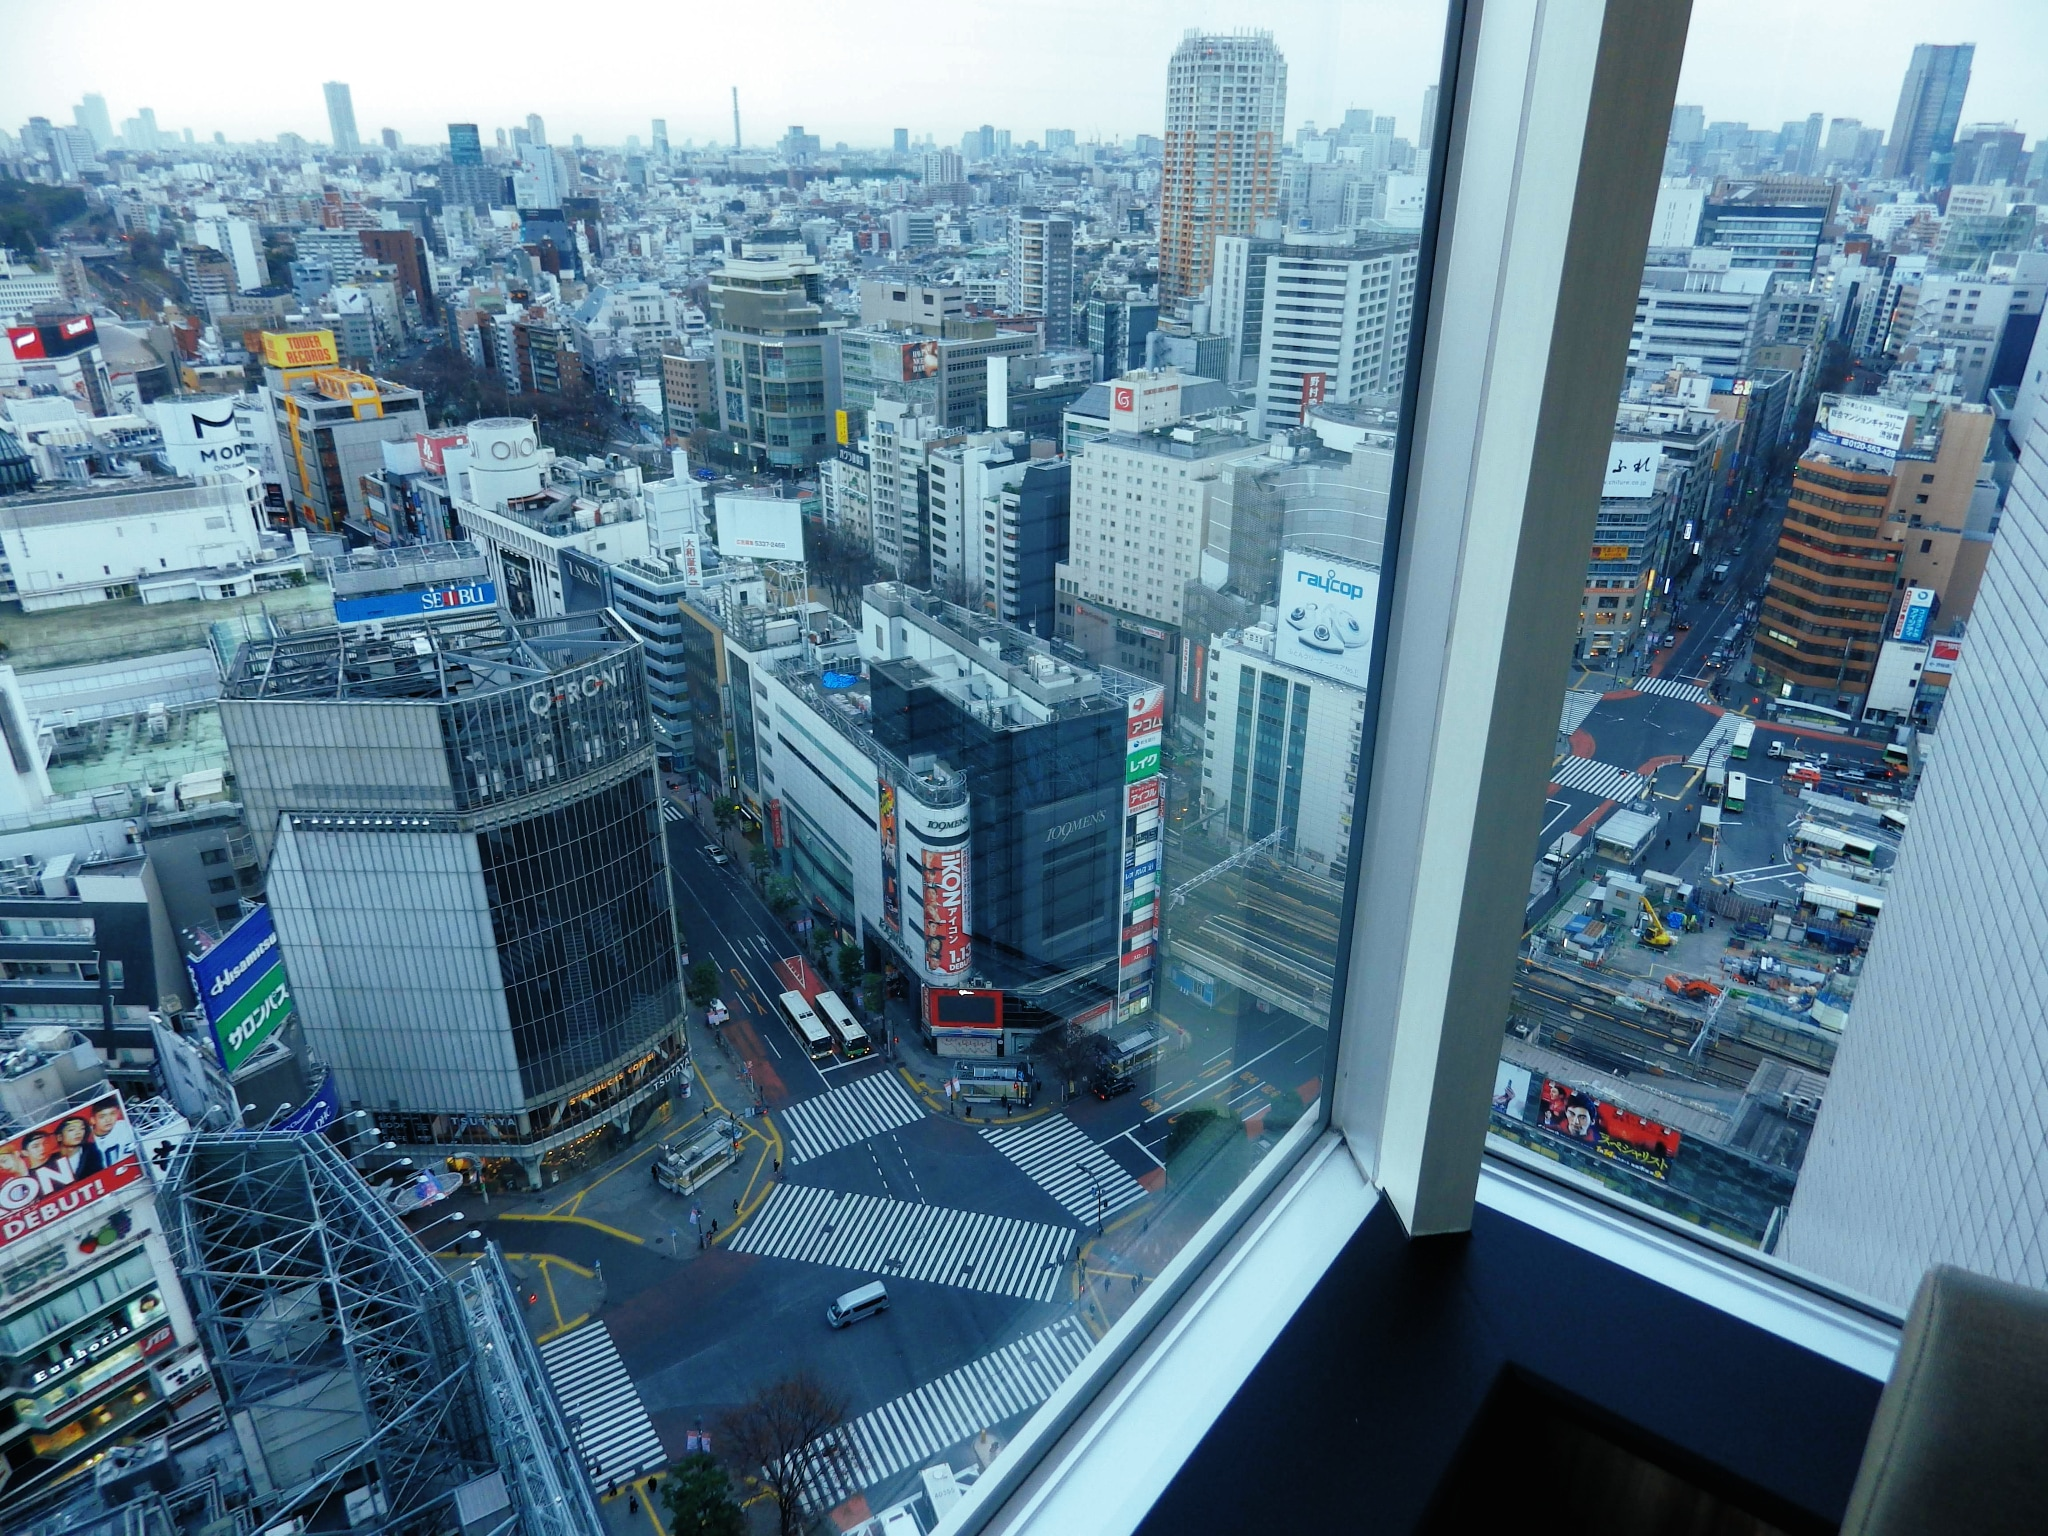 Table-side view from the Shunsai restaurant at the top of Shibuya Excel Hotel Tokyu.